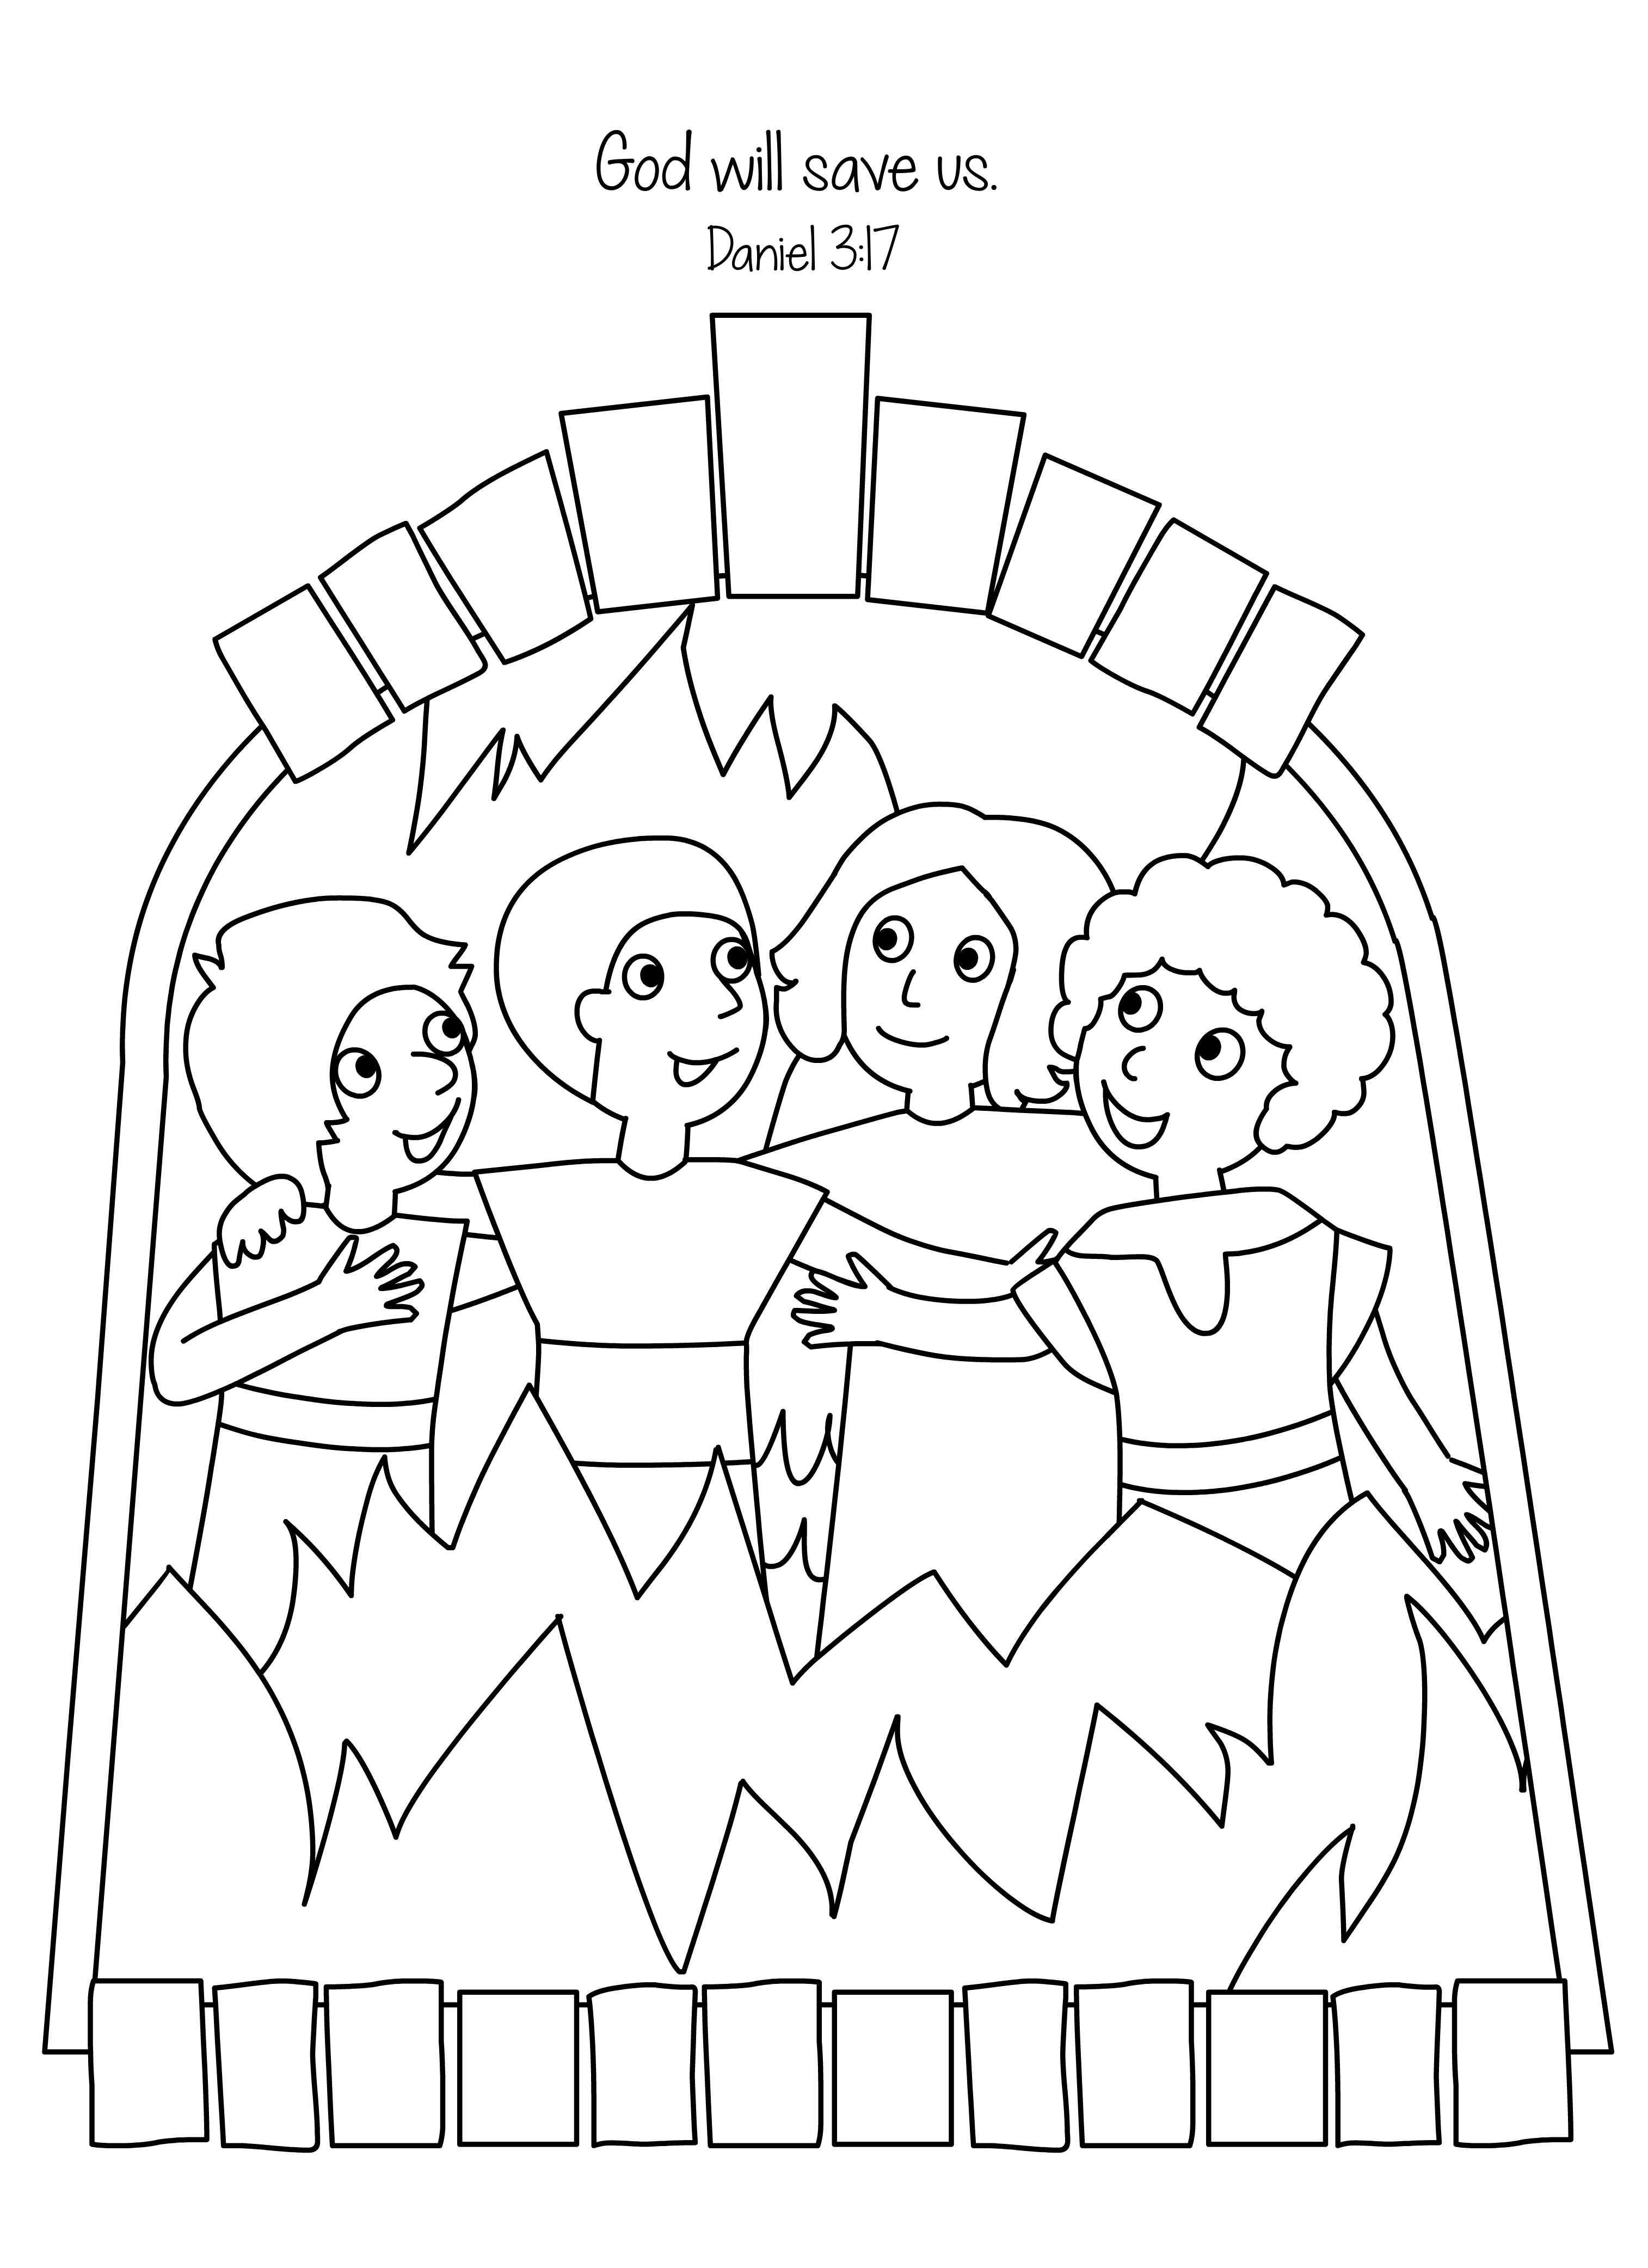 Amazing Fiery Furnace Coloring Page - Shadrach Meshach And